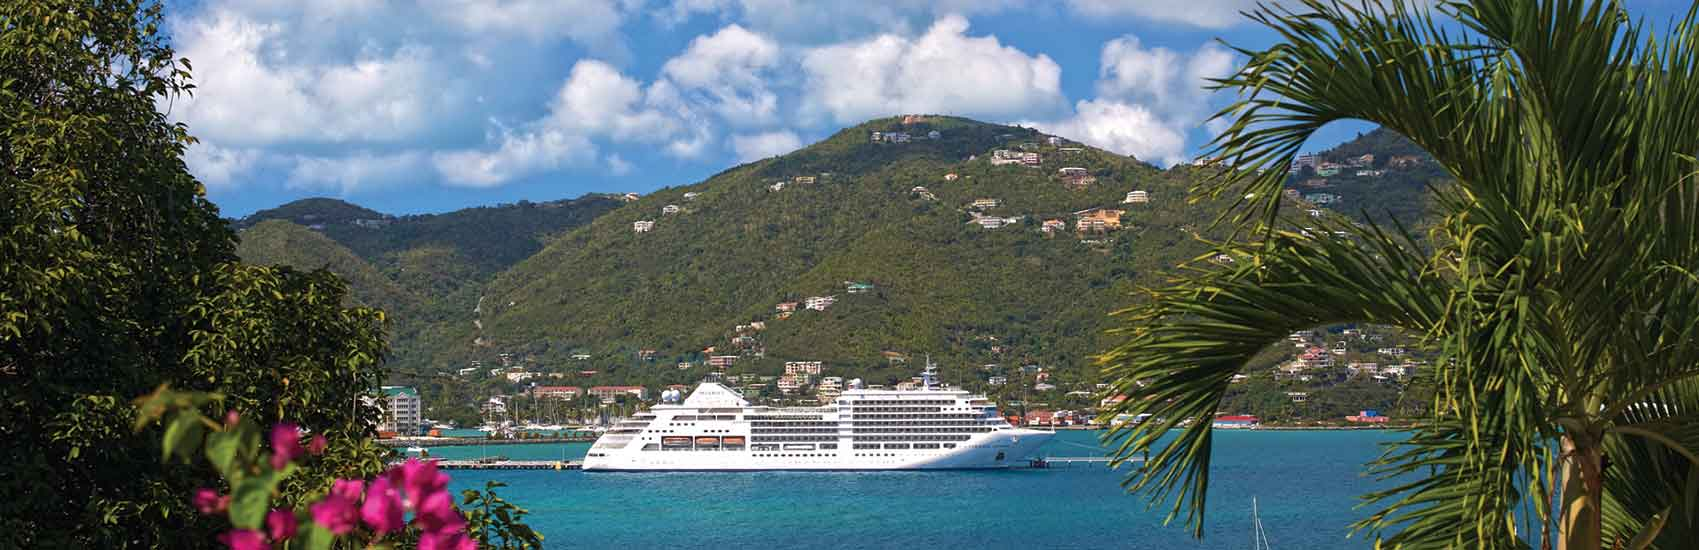 Silversea Caribbean Air Offer 0